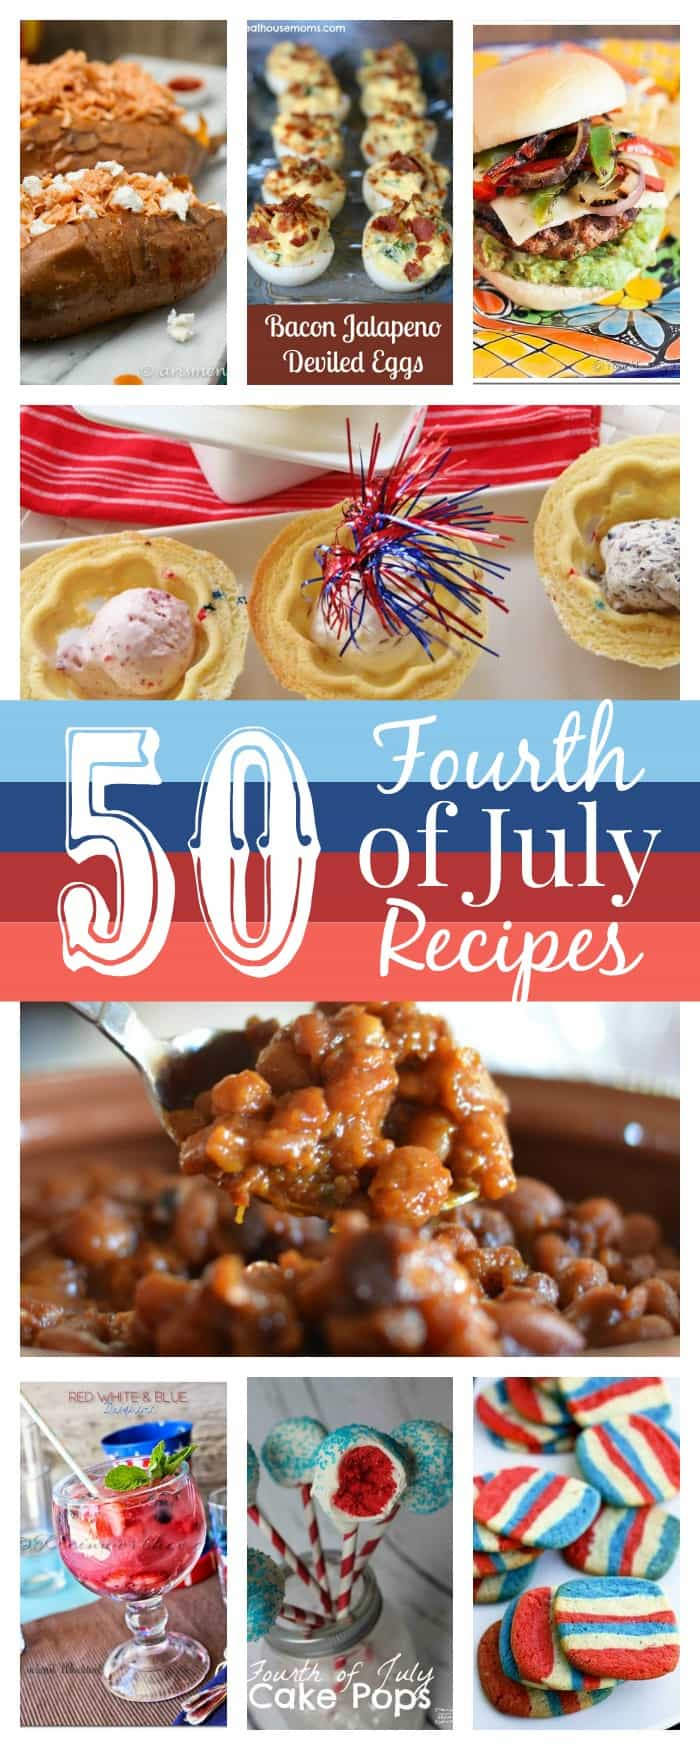 ~50 Fourth of July Recipes